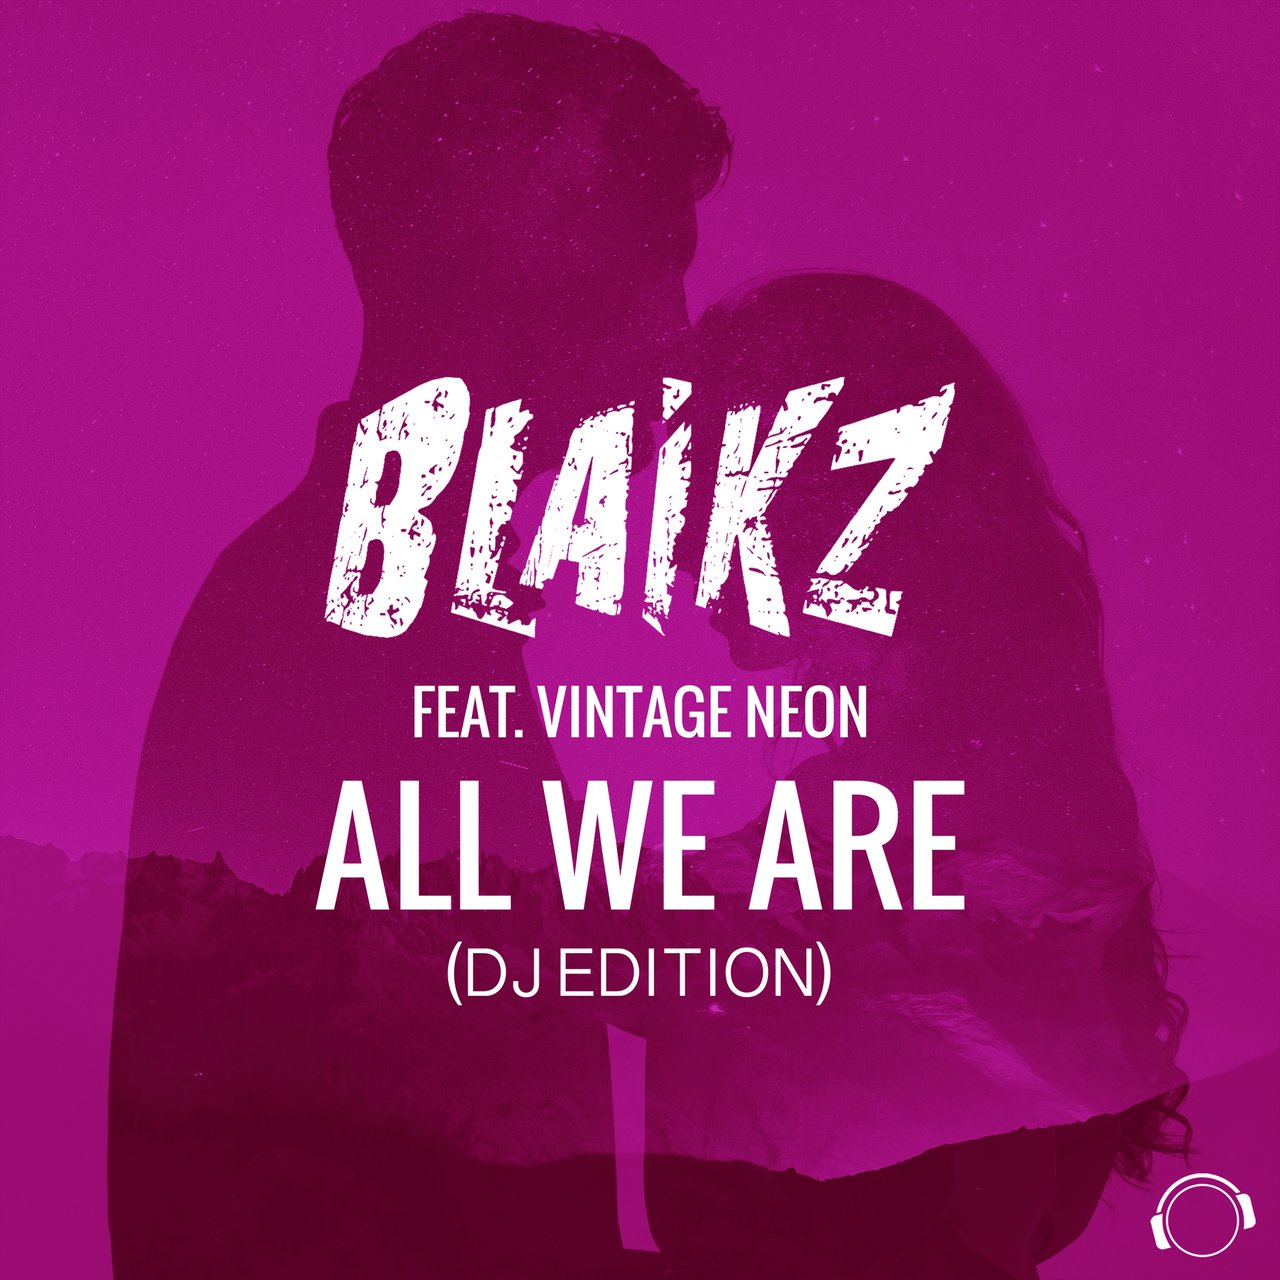 All We Are (DJ Edition) [feat. Vintage Neon]